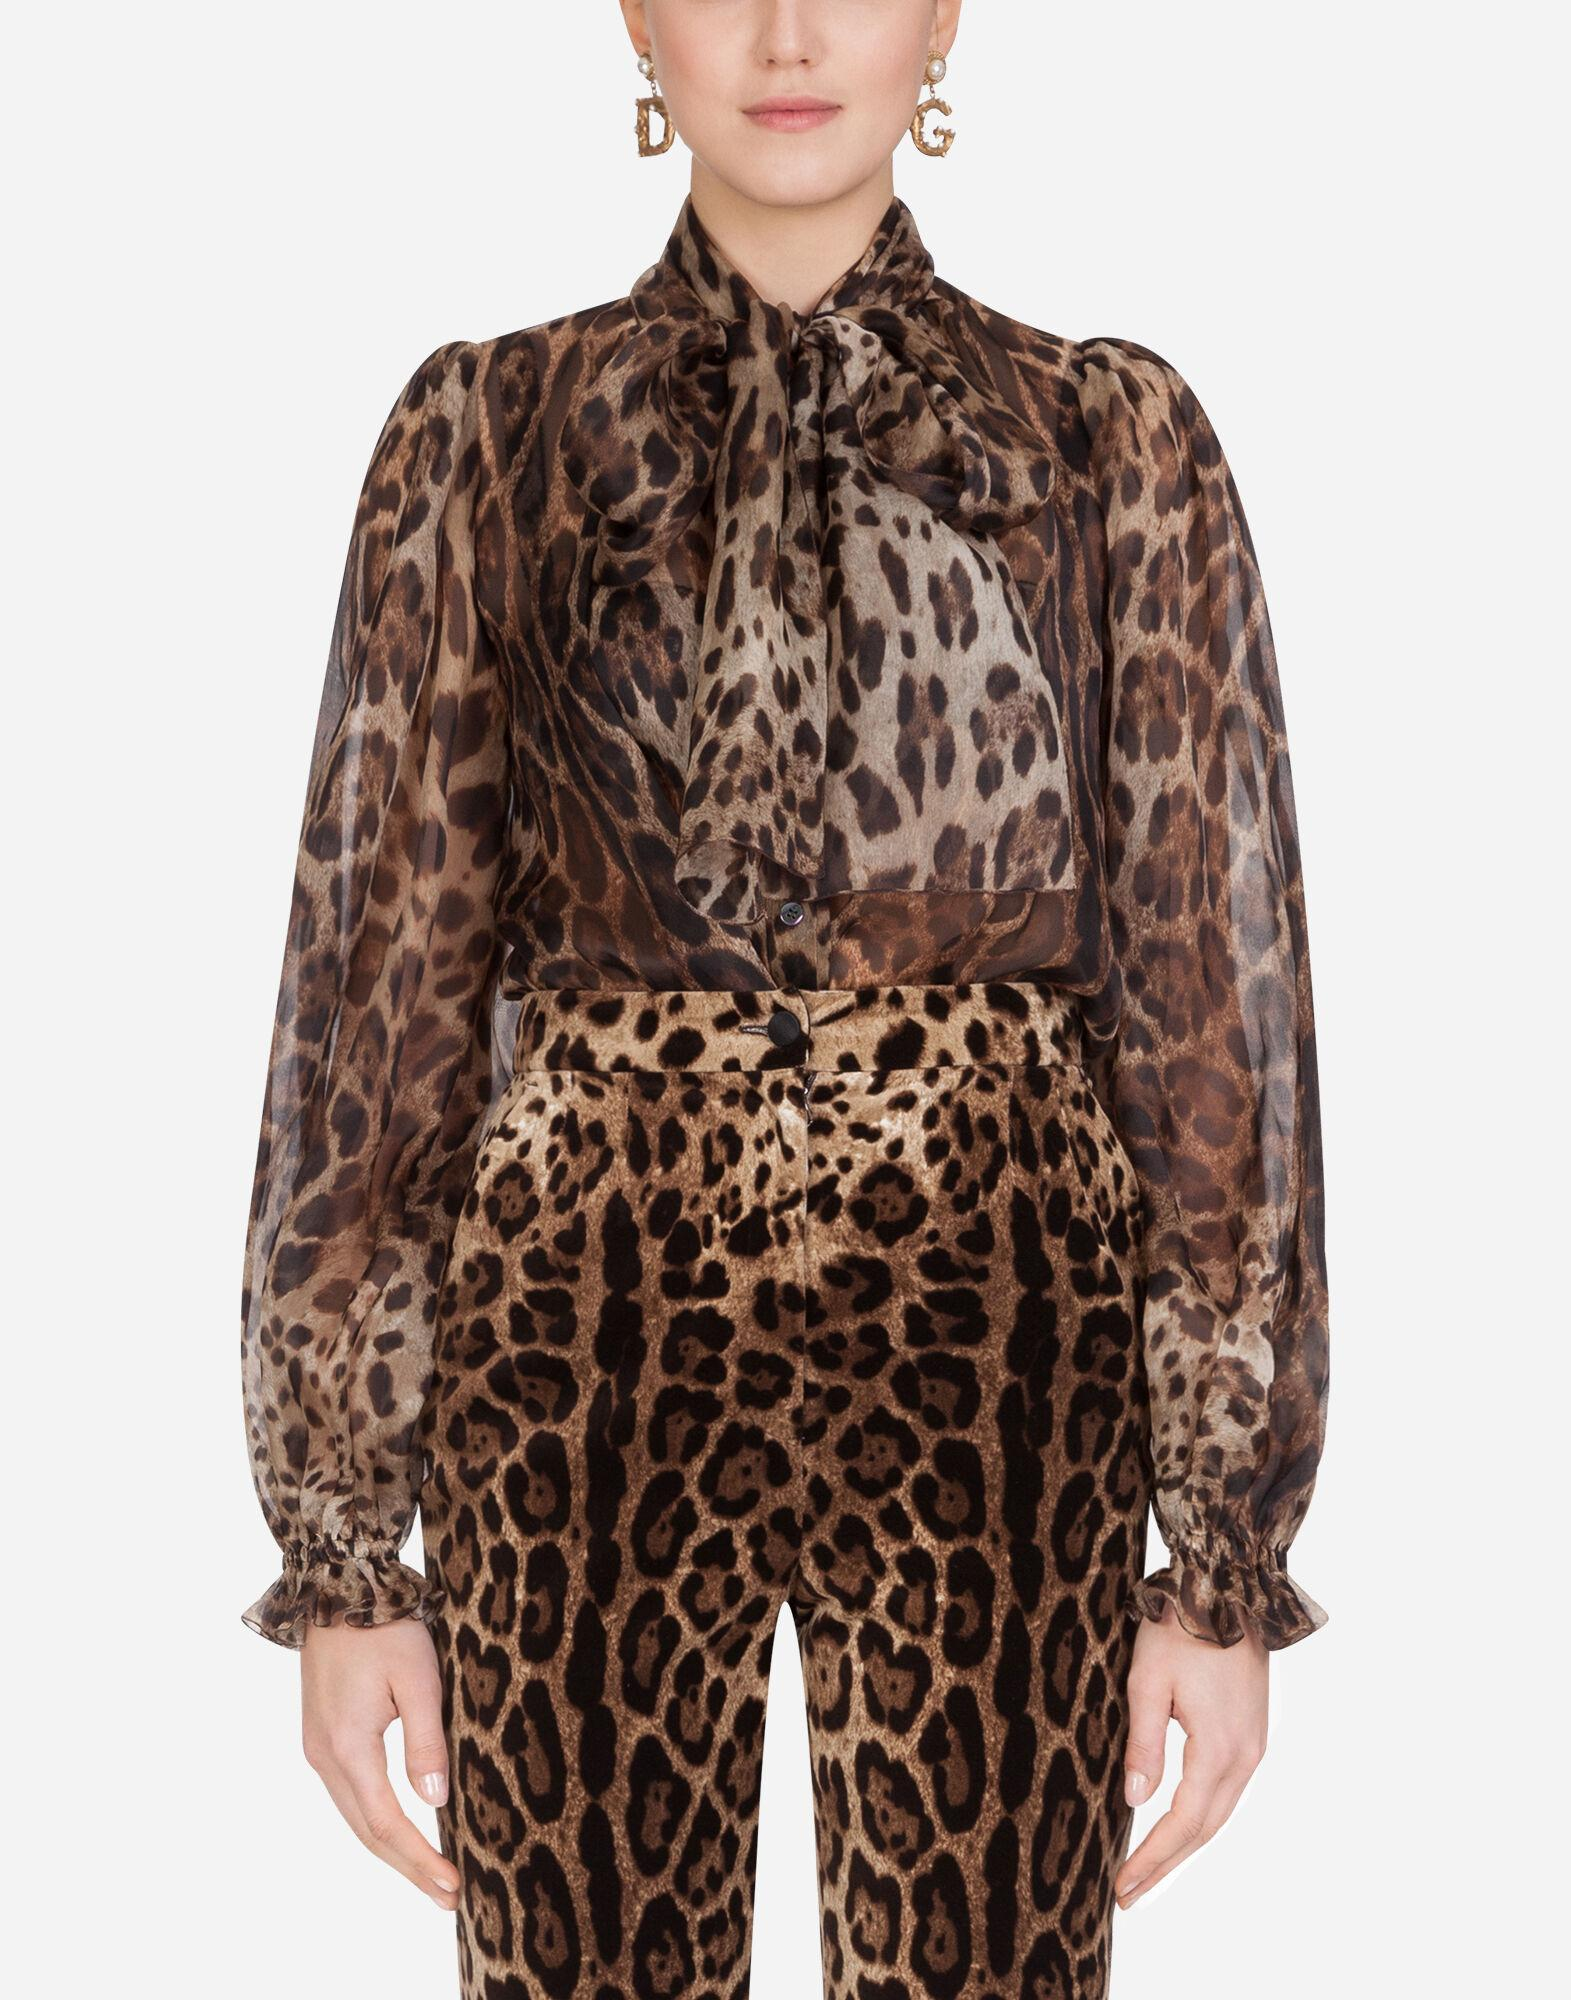 Pussy-bow organza shirt with leopard print